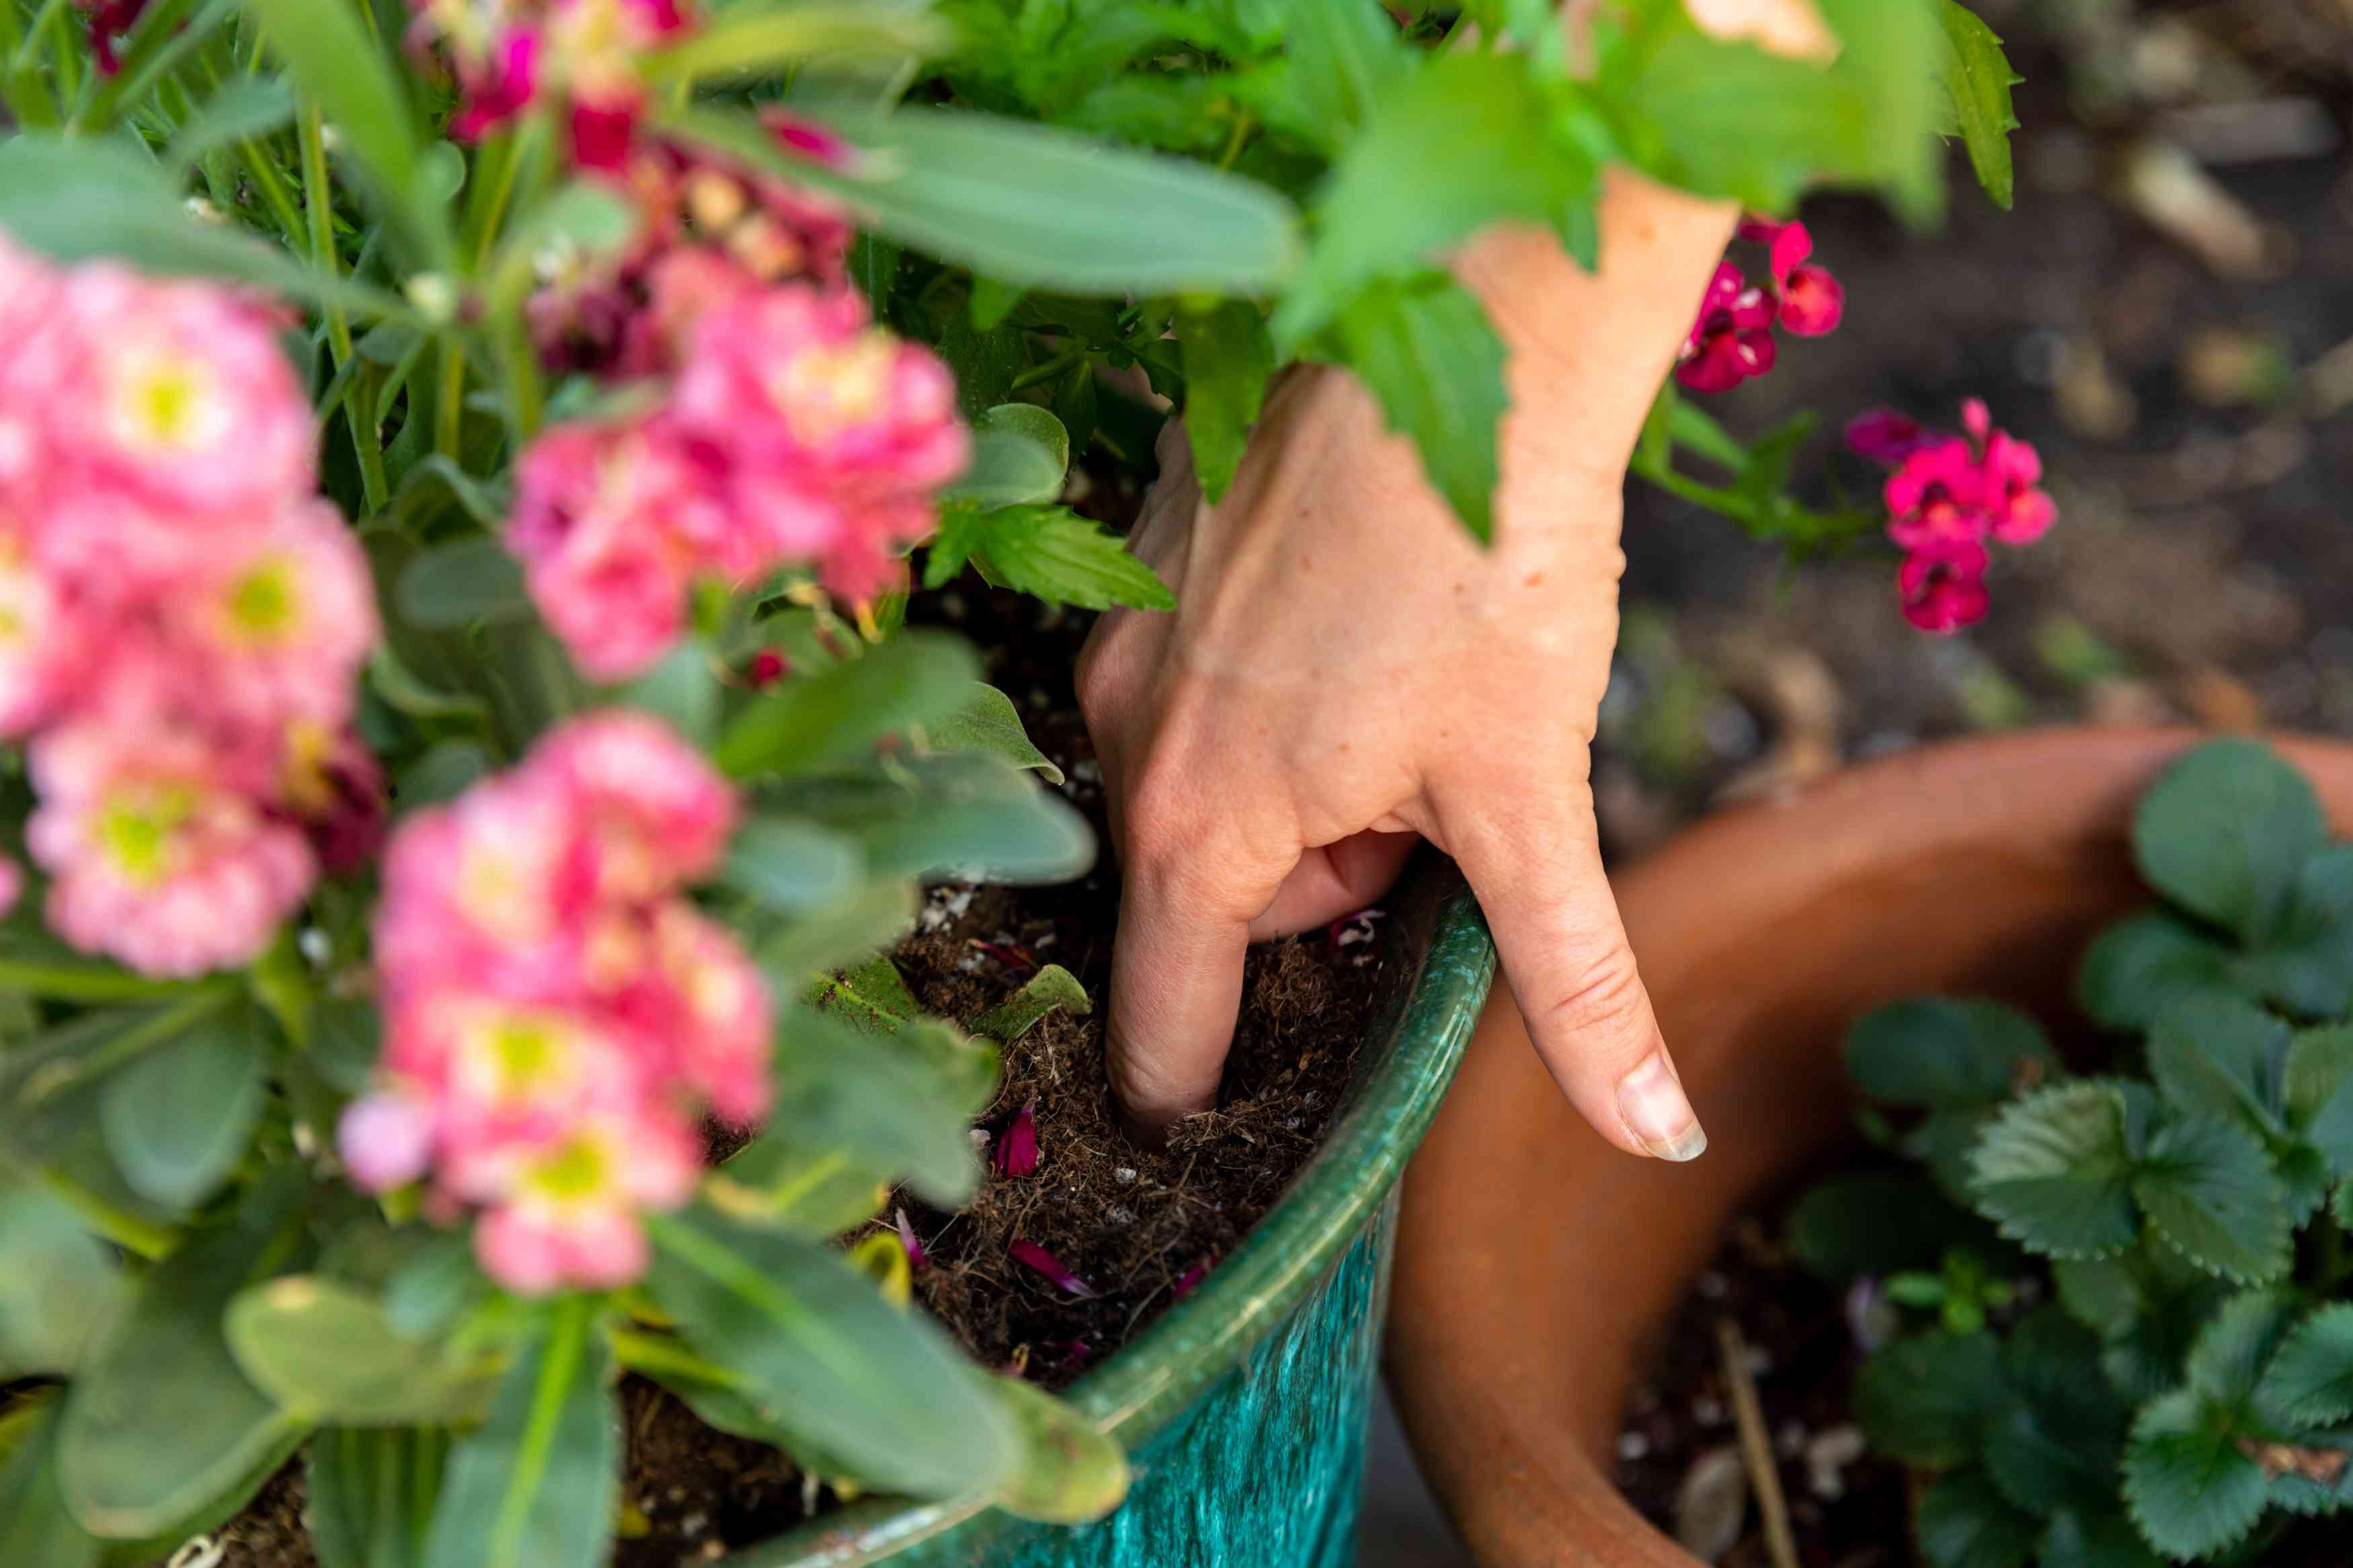 Finger dipped into container soil to check moisture levels in potted plant with pink flowers